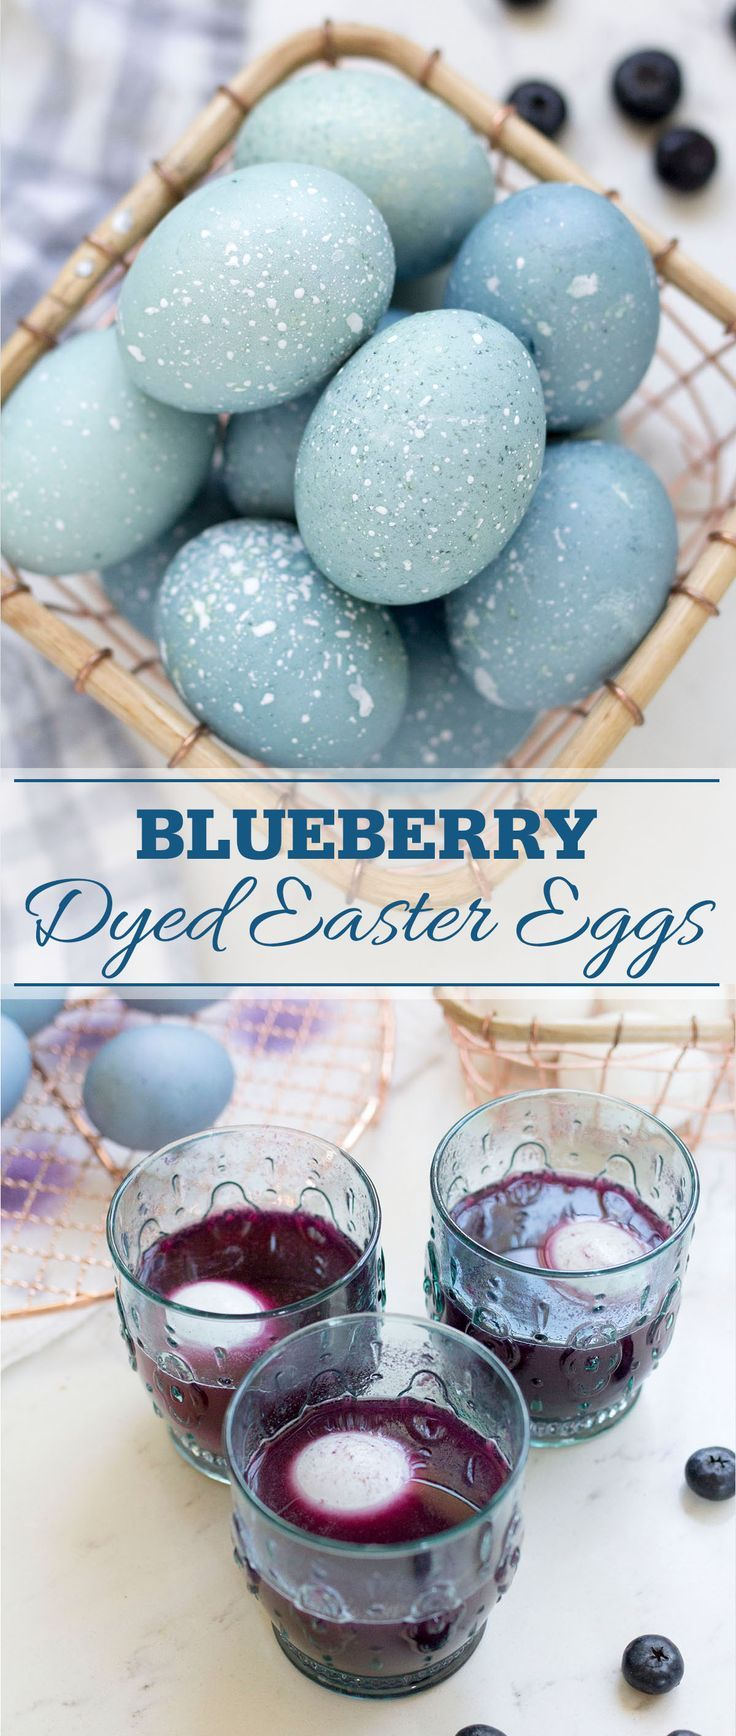 How to dye Easter Eggs with an all natural egg dye made from blueberries! I adore these!! So pretty